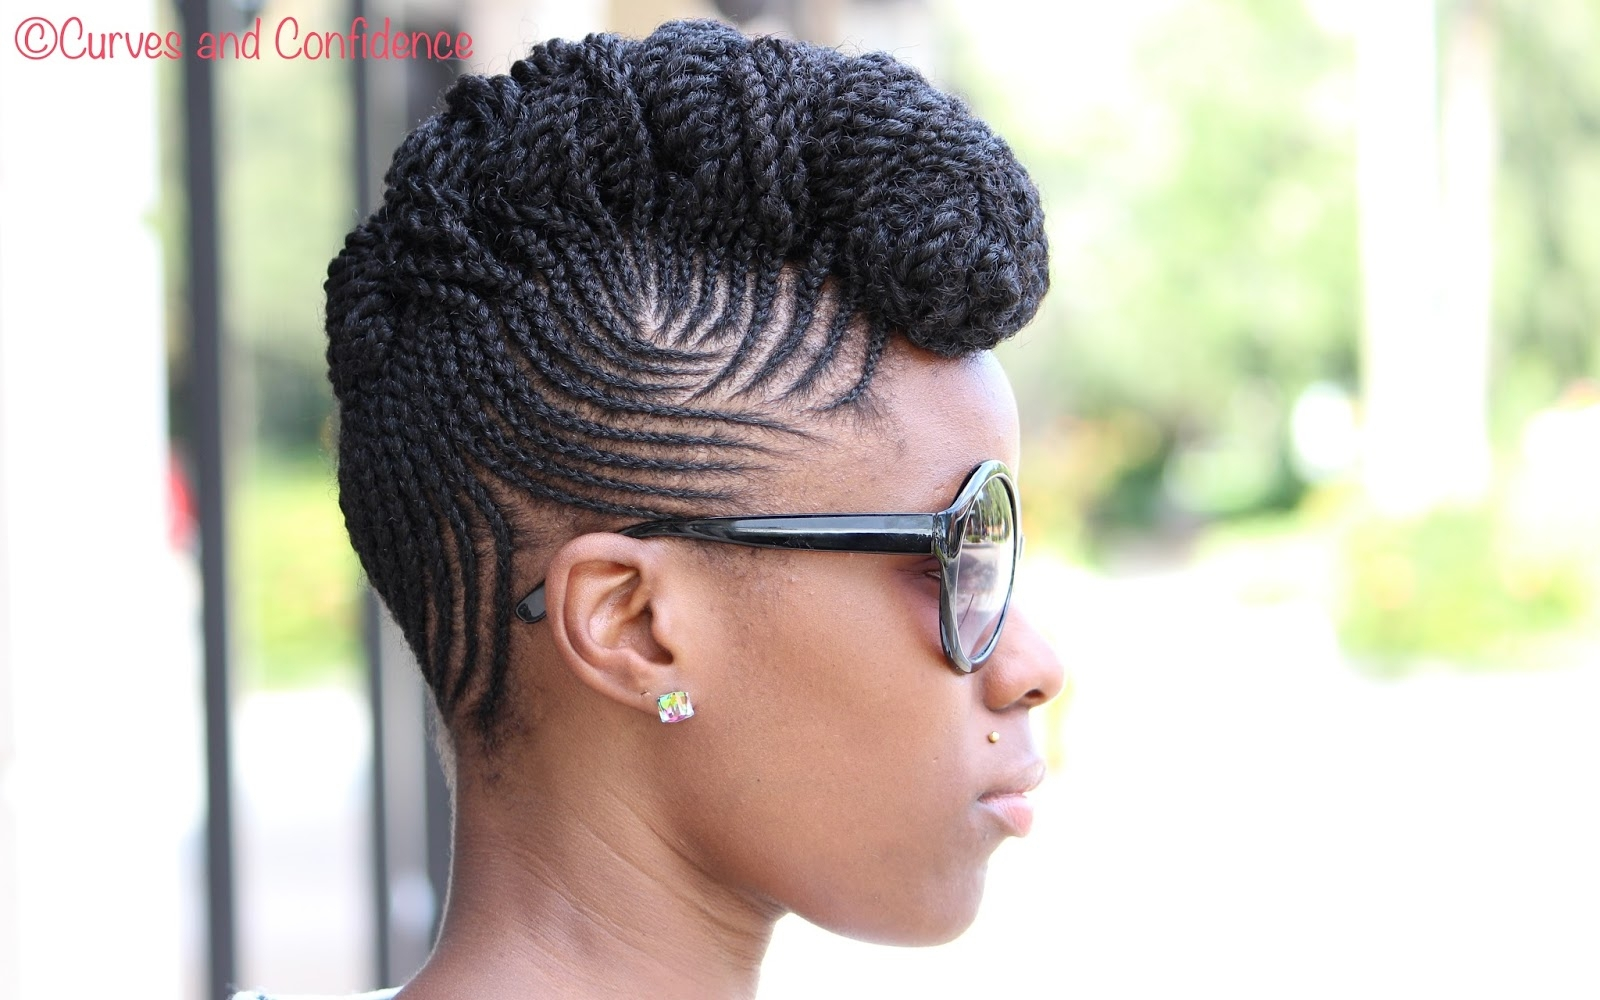 Cornrow Braided Updo Hairstyles Women Hairstyle Ware Simple Of Updo Within Recent Updo Cornrows Hairstyles (View 5 of 15)